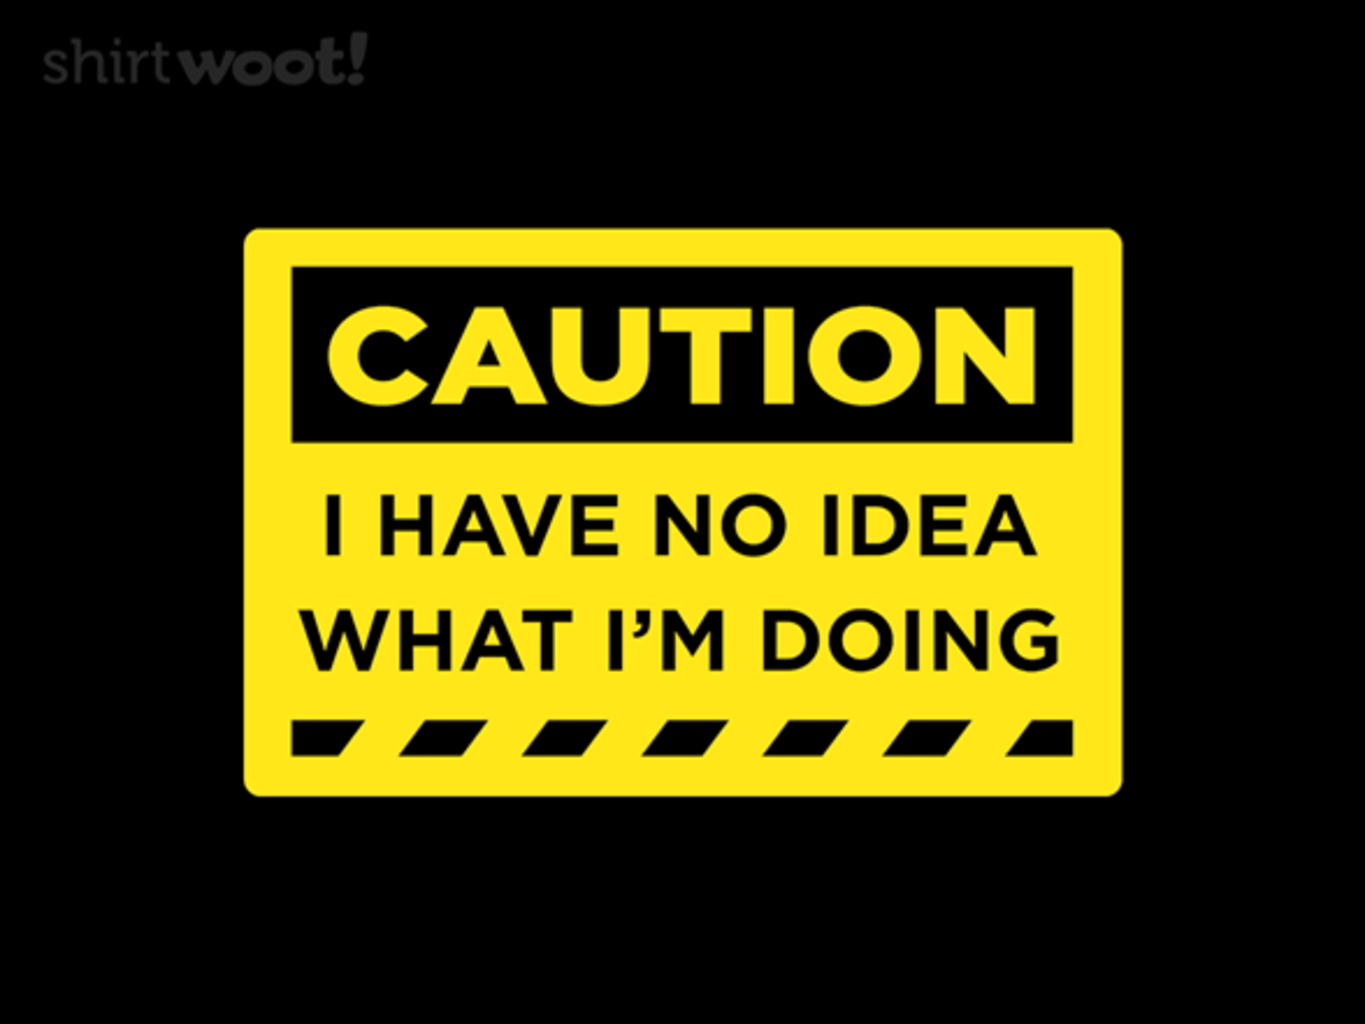 Woot!: A Warning to Others